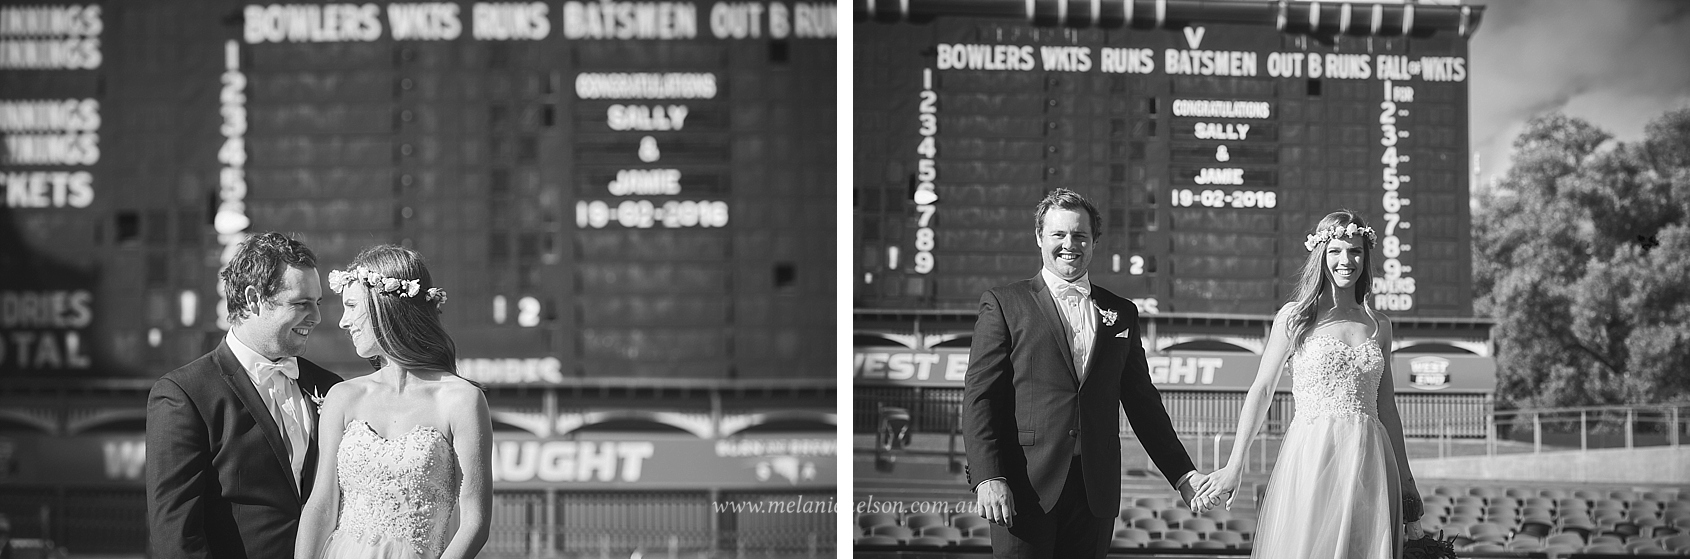 adelaide_oval_wedding_photography21.jpg